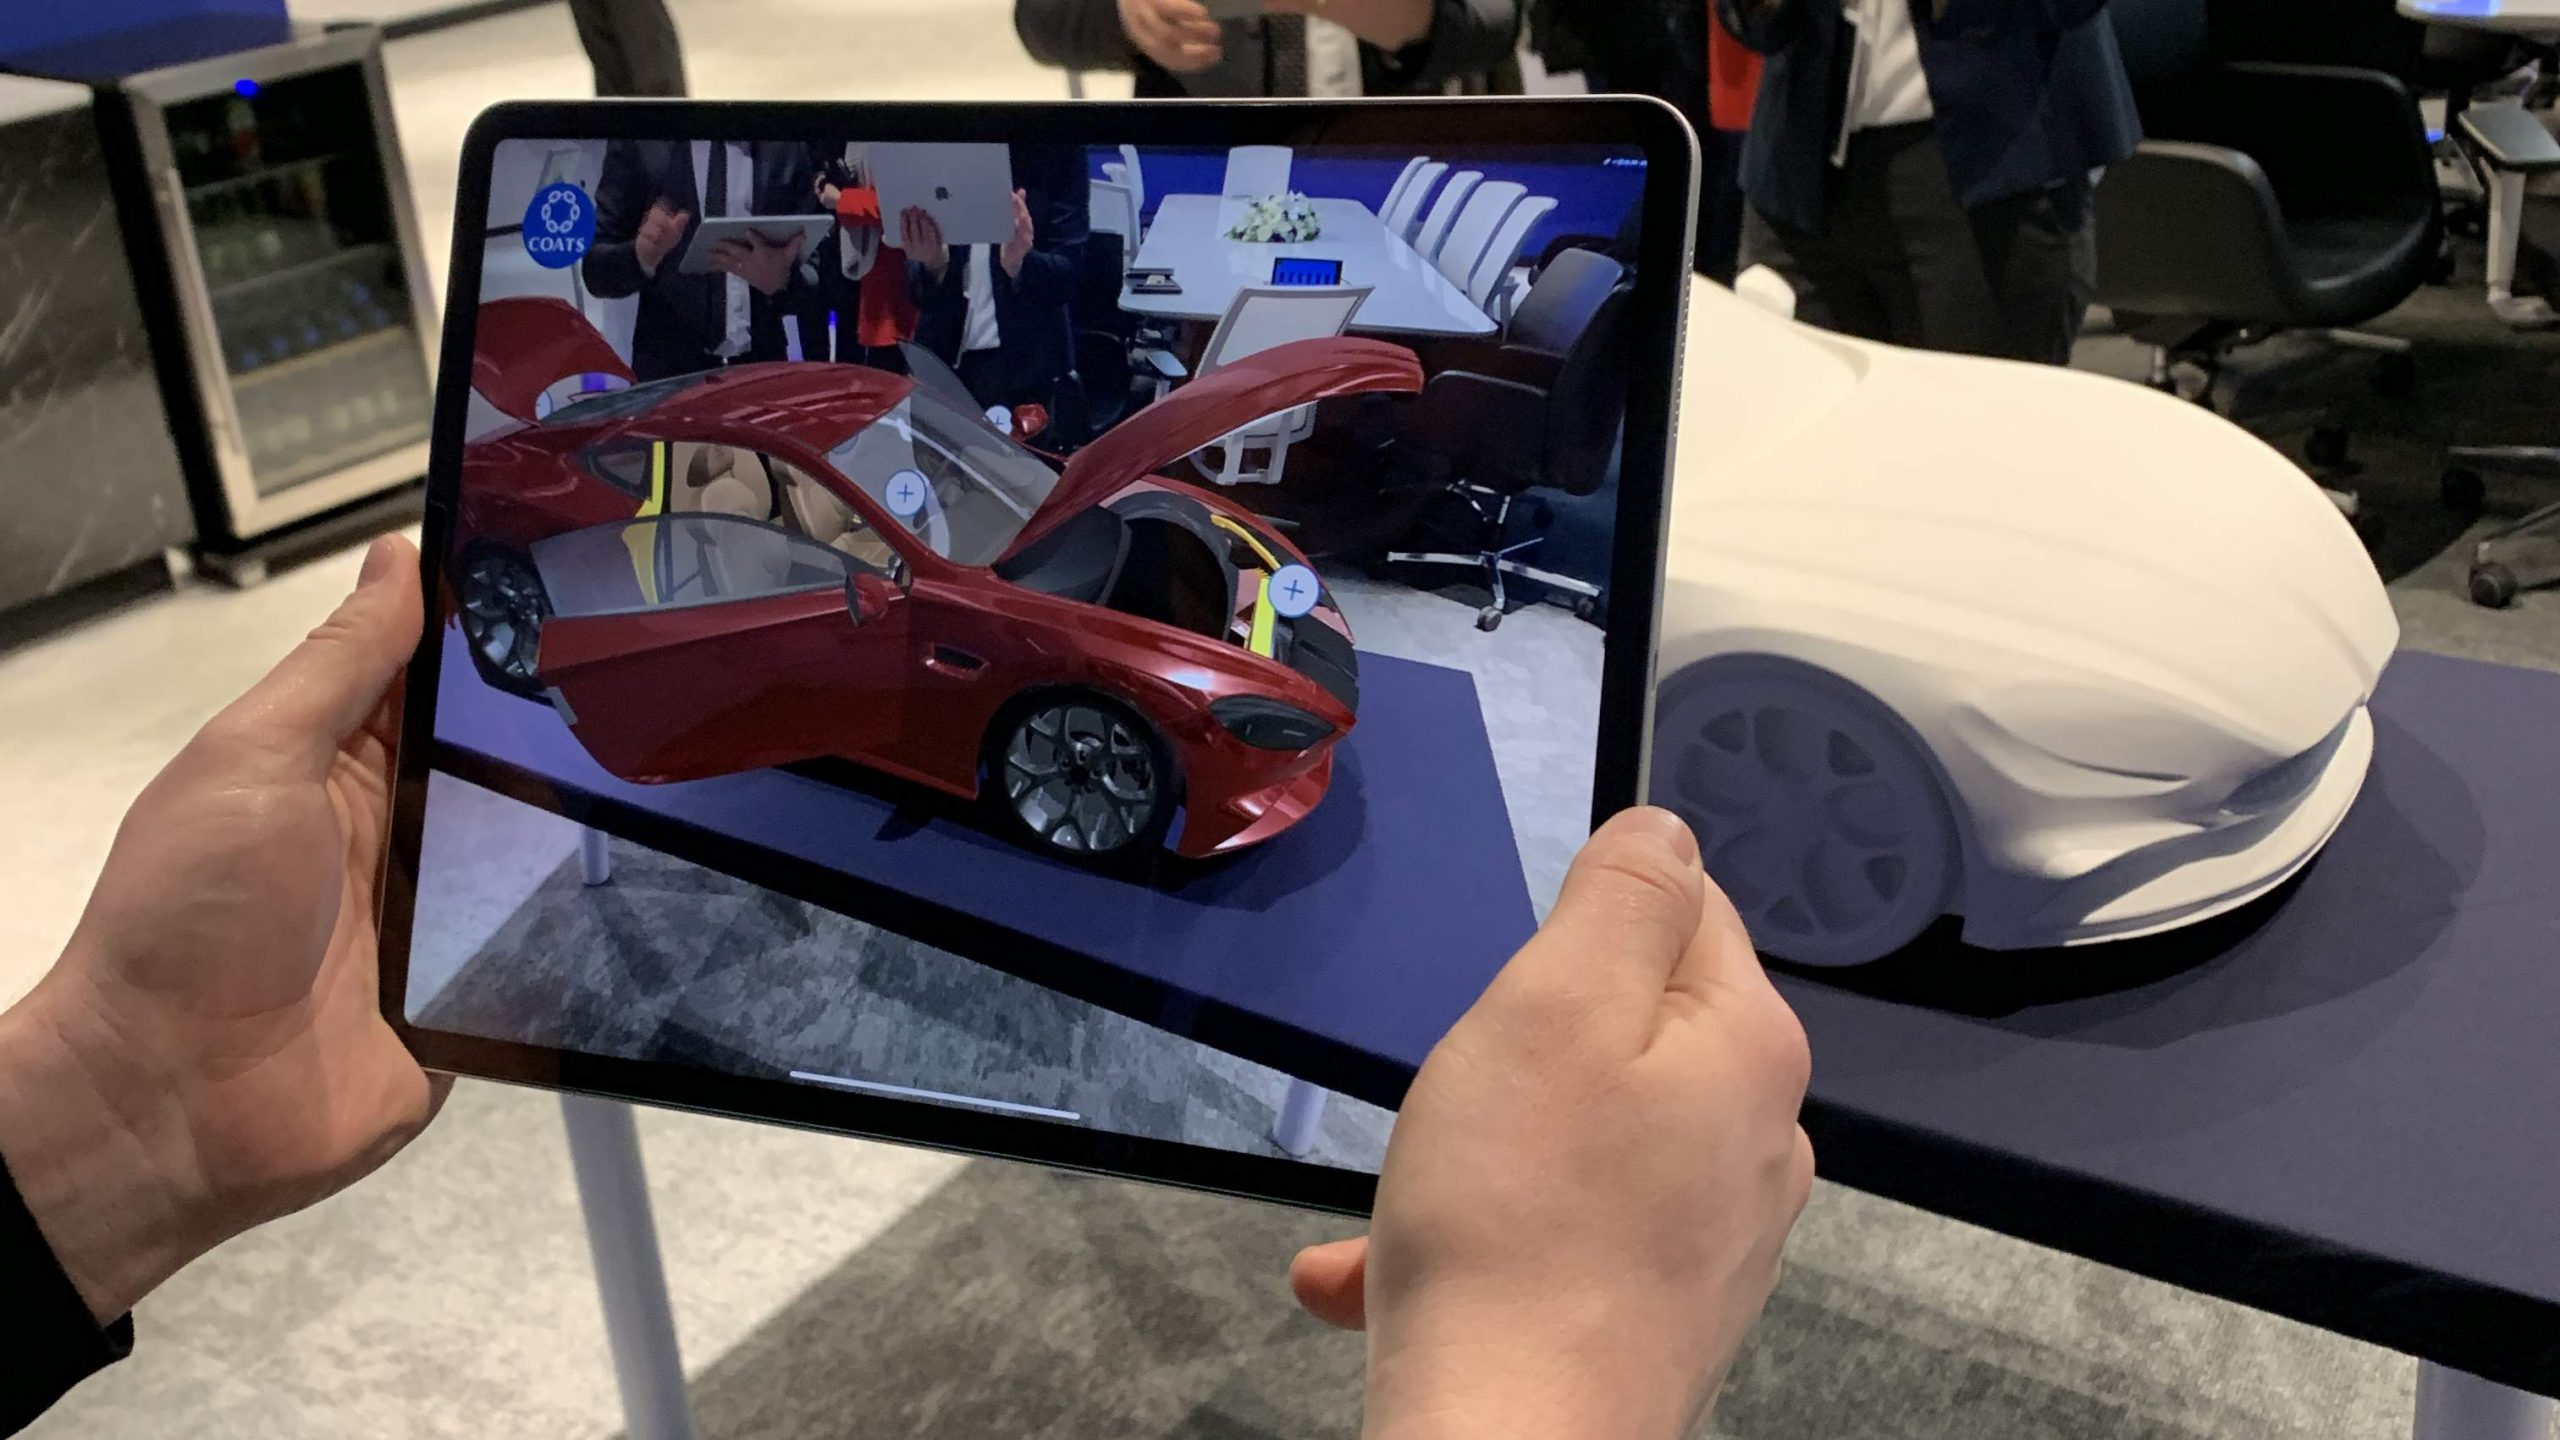 Coats Car Interactive Augmented Reality shown on an iPad